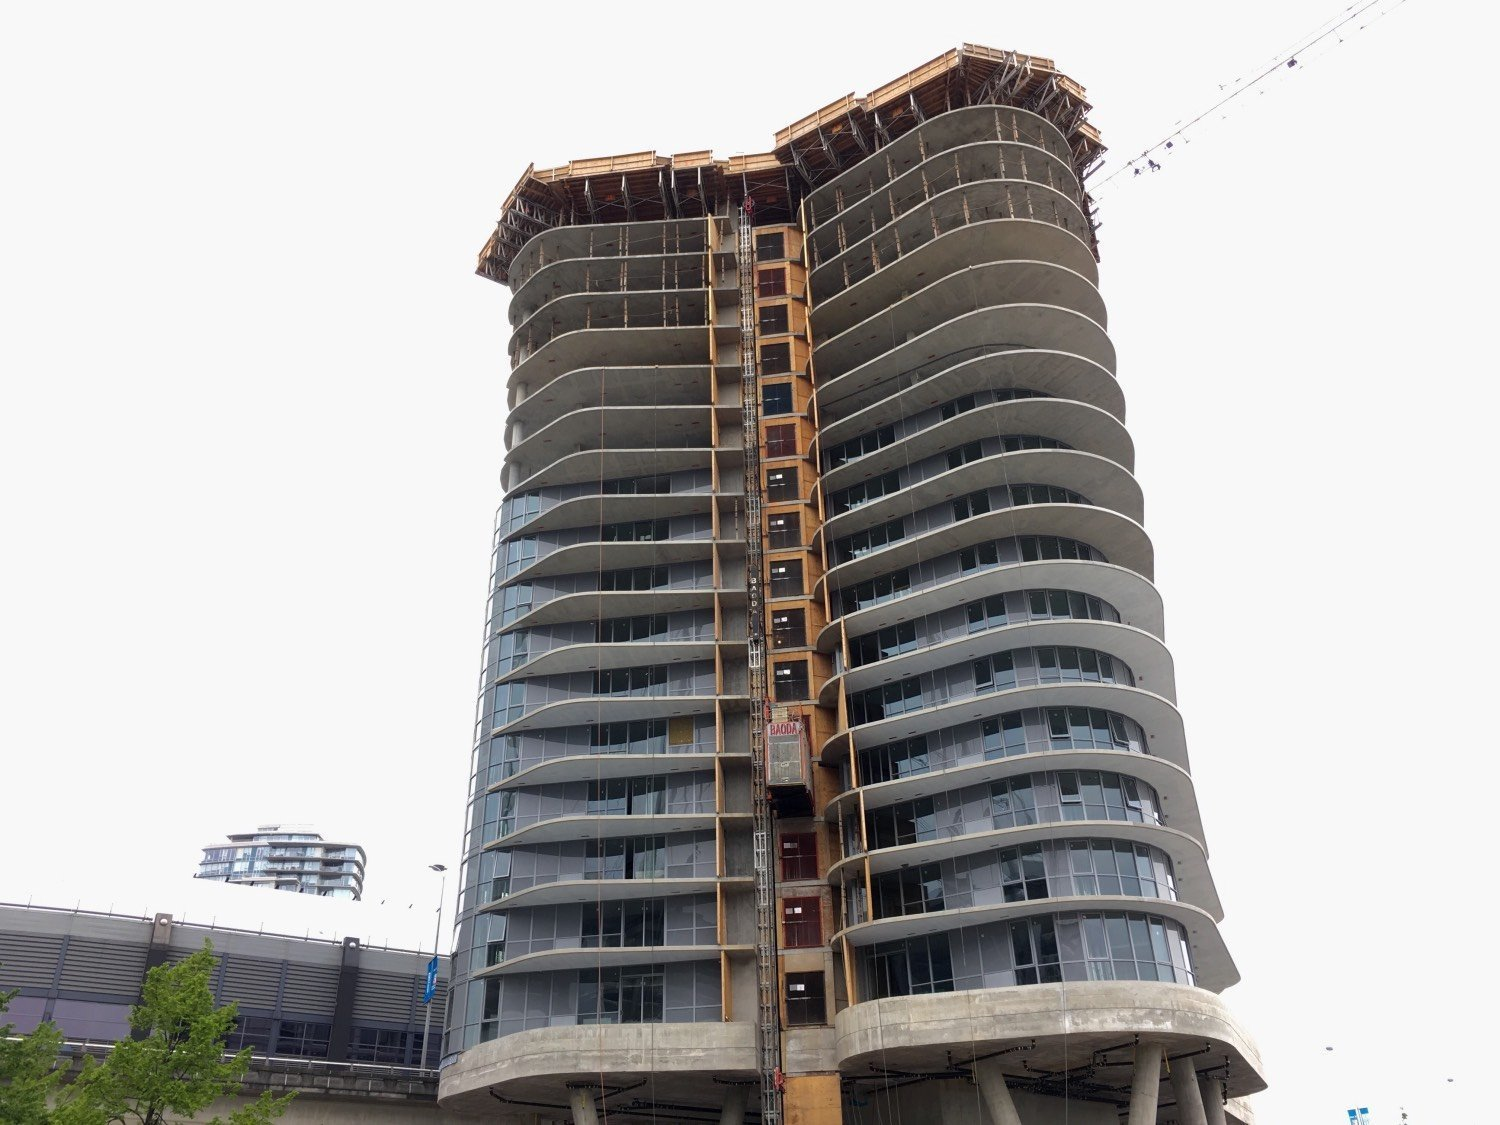 Second tower of rental apartments at Rogers Arena takes